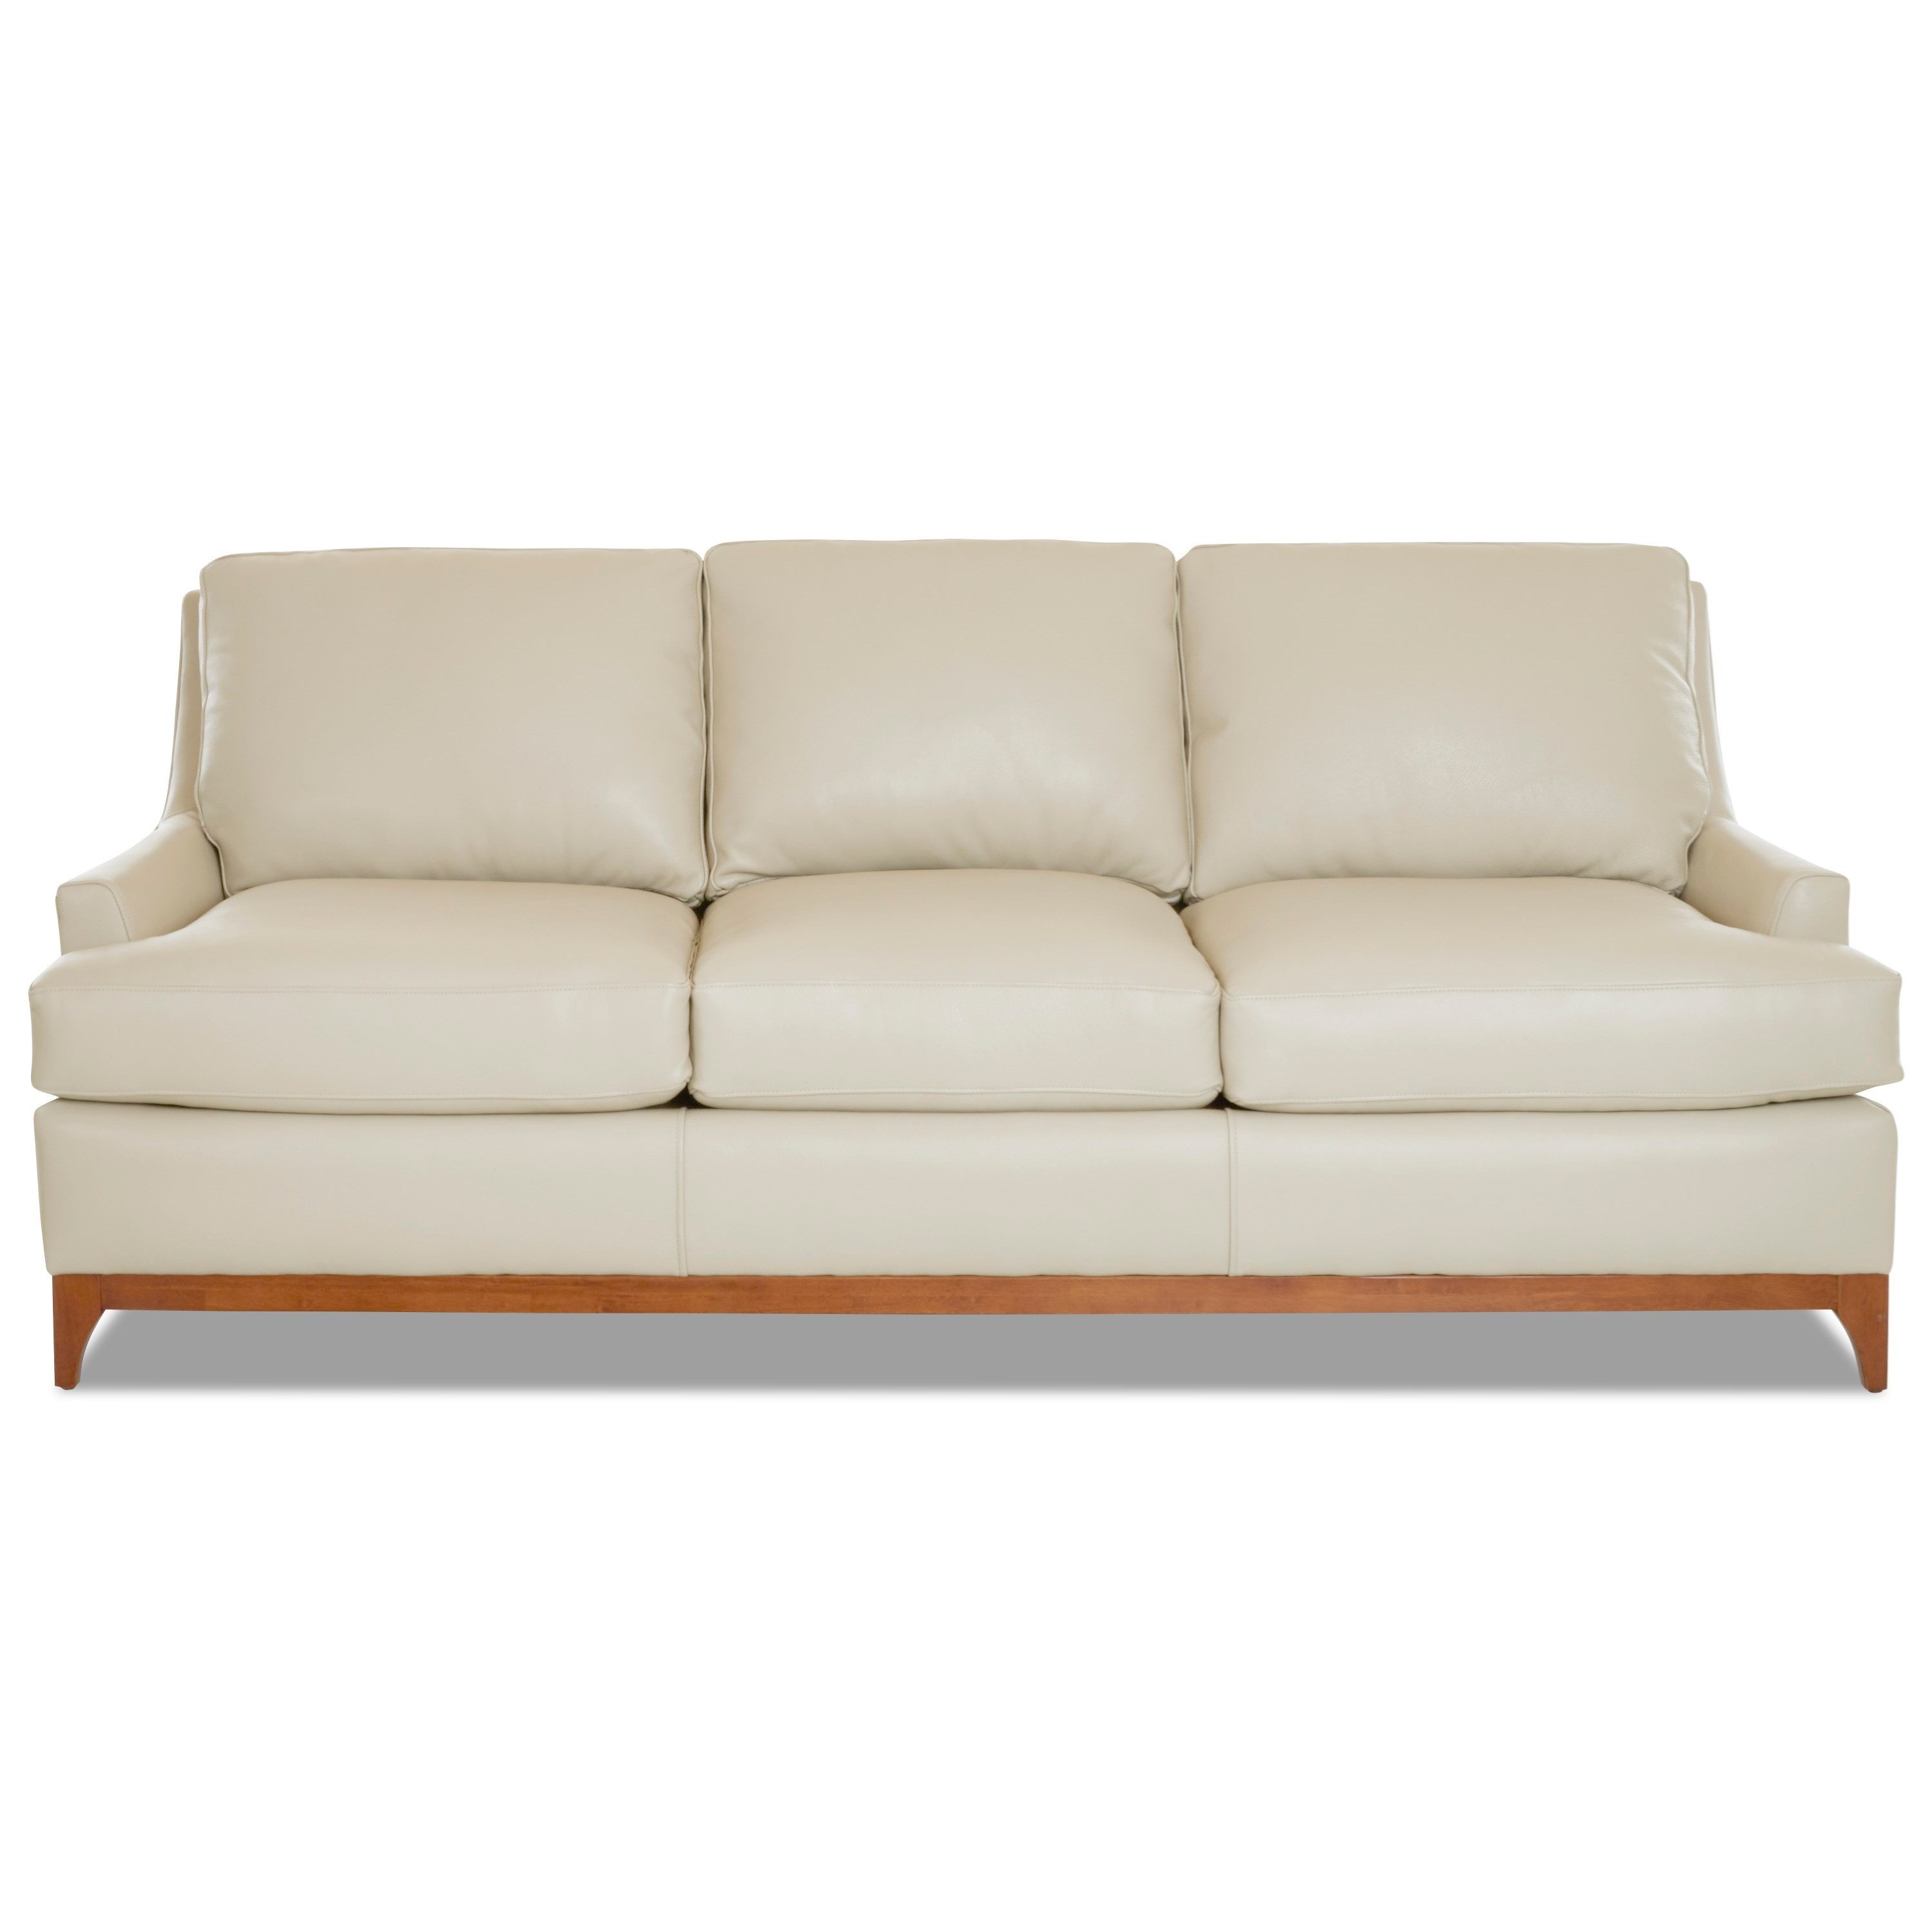 Klaussner Luca Contemporary Leather Sofa With Wood Base Value City Furniture Sofas